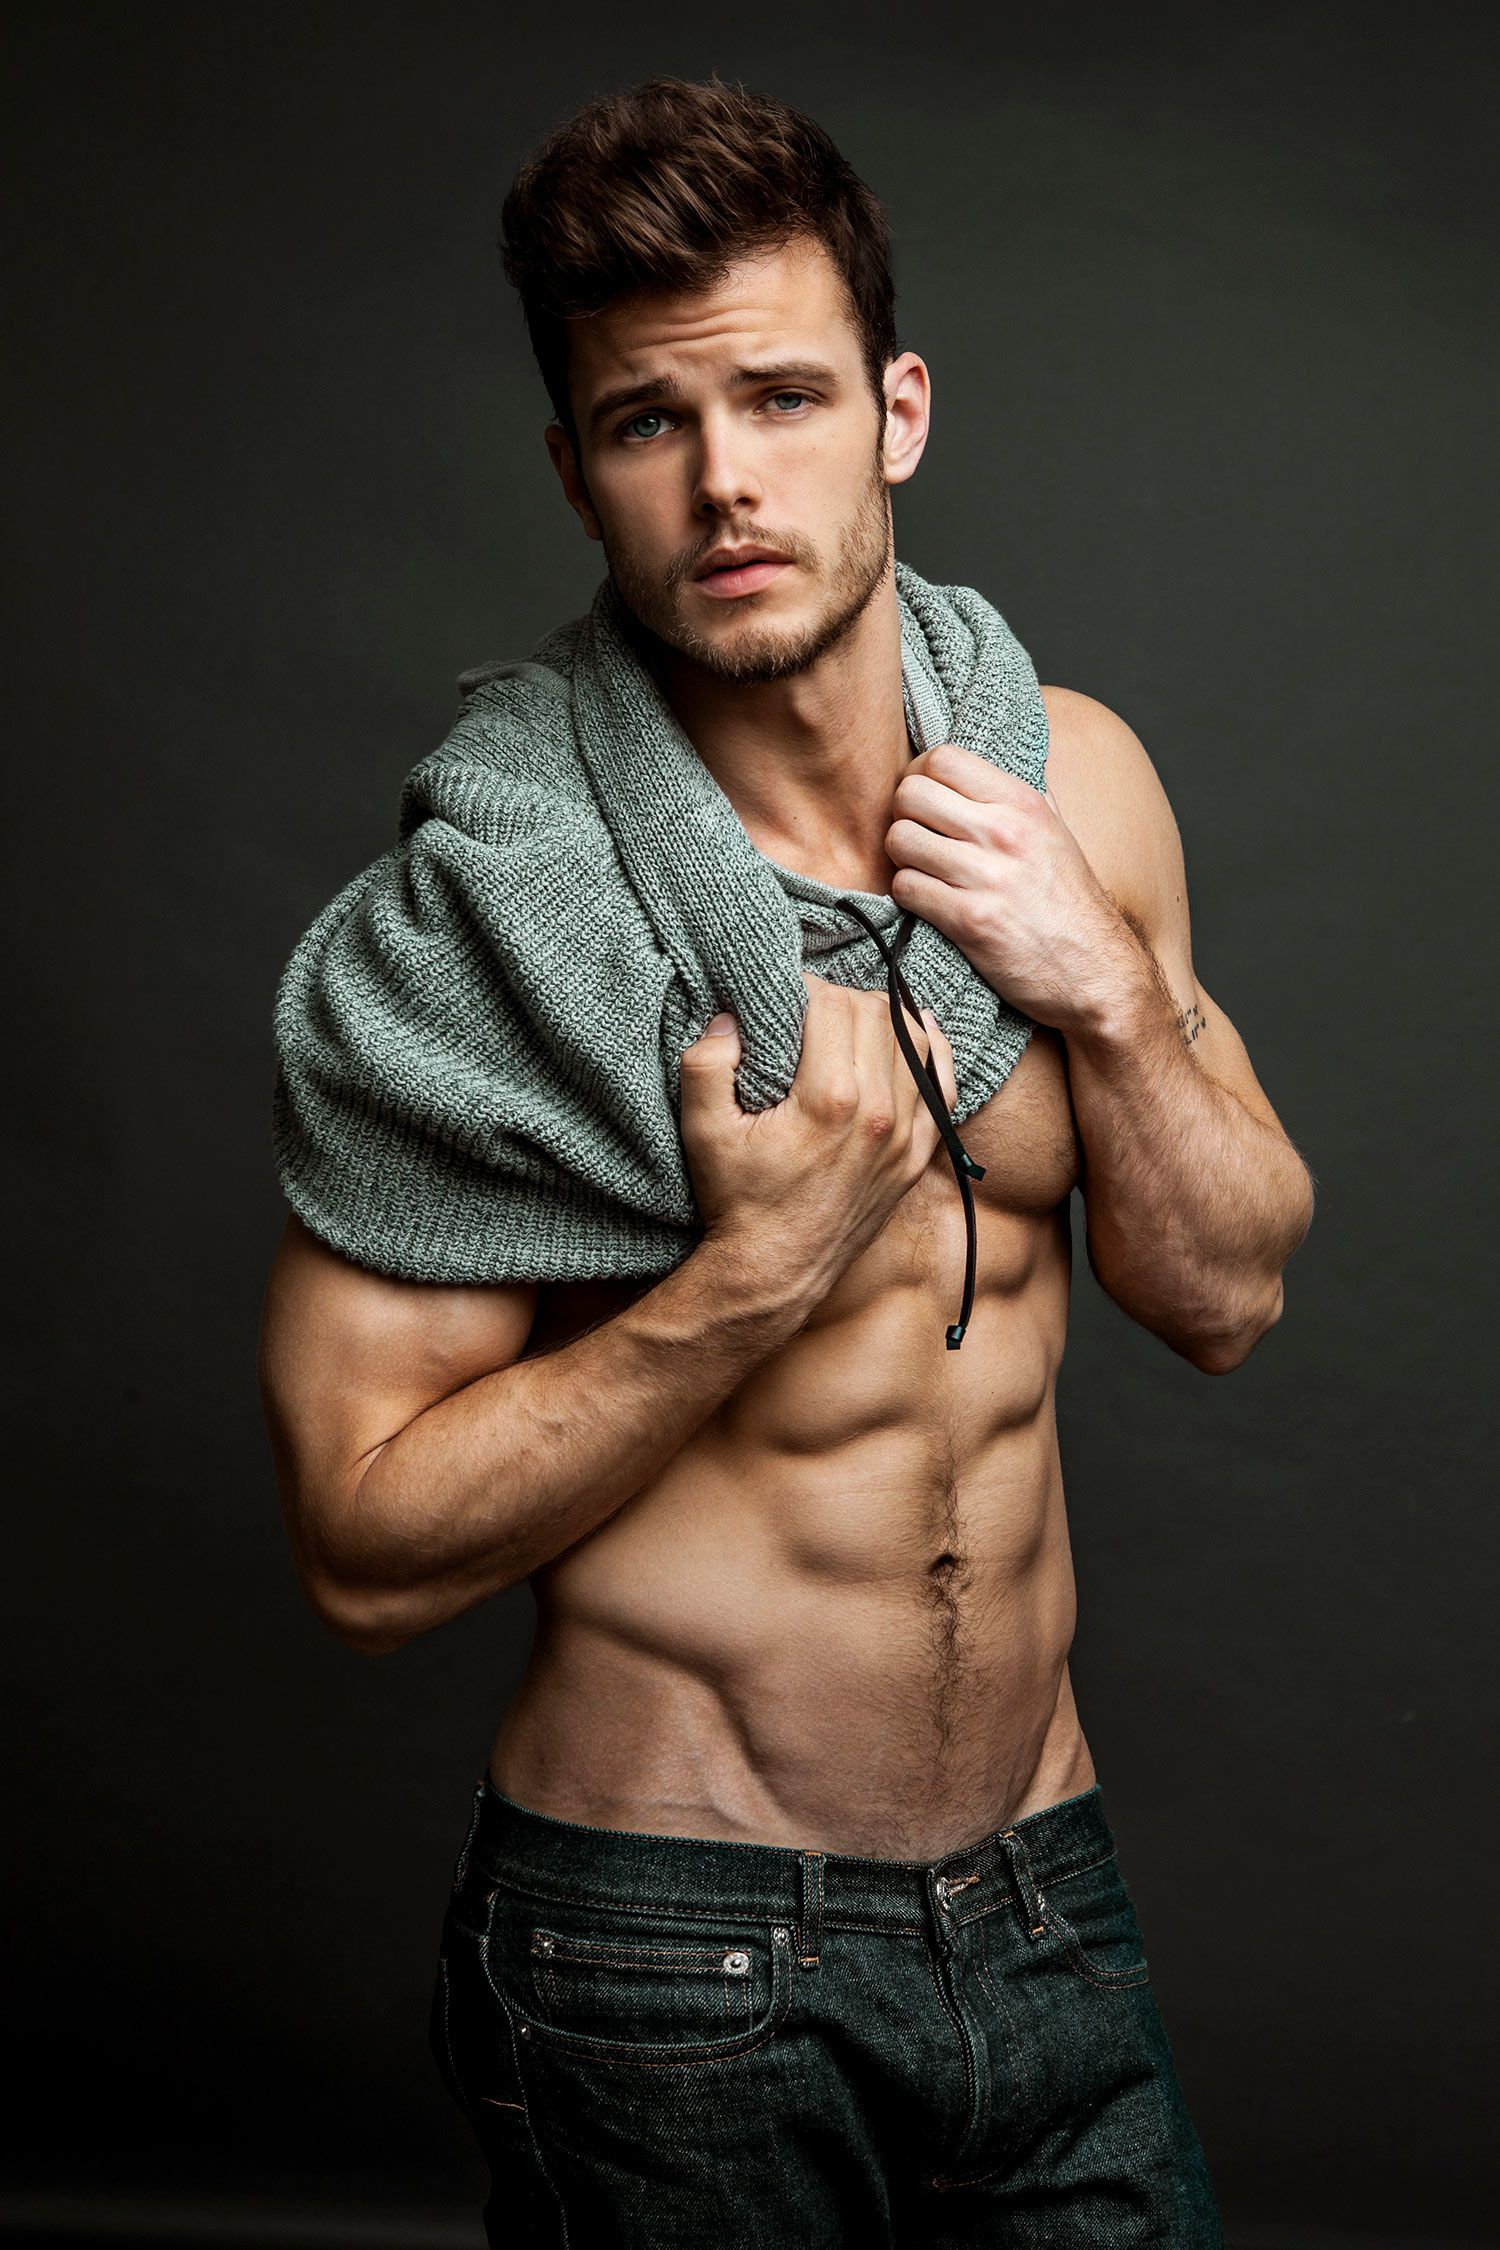 Y&R star Michael Mealor shows off his washboard abs.